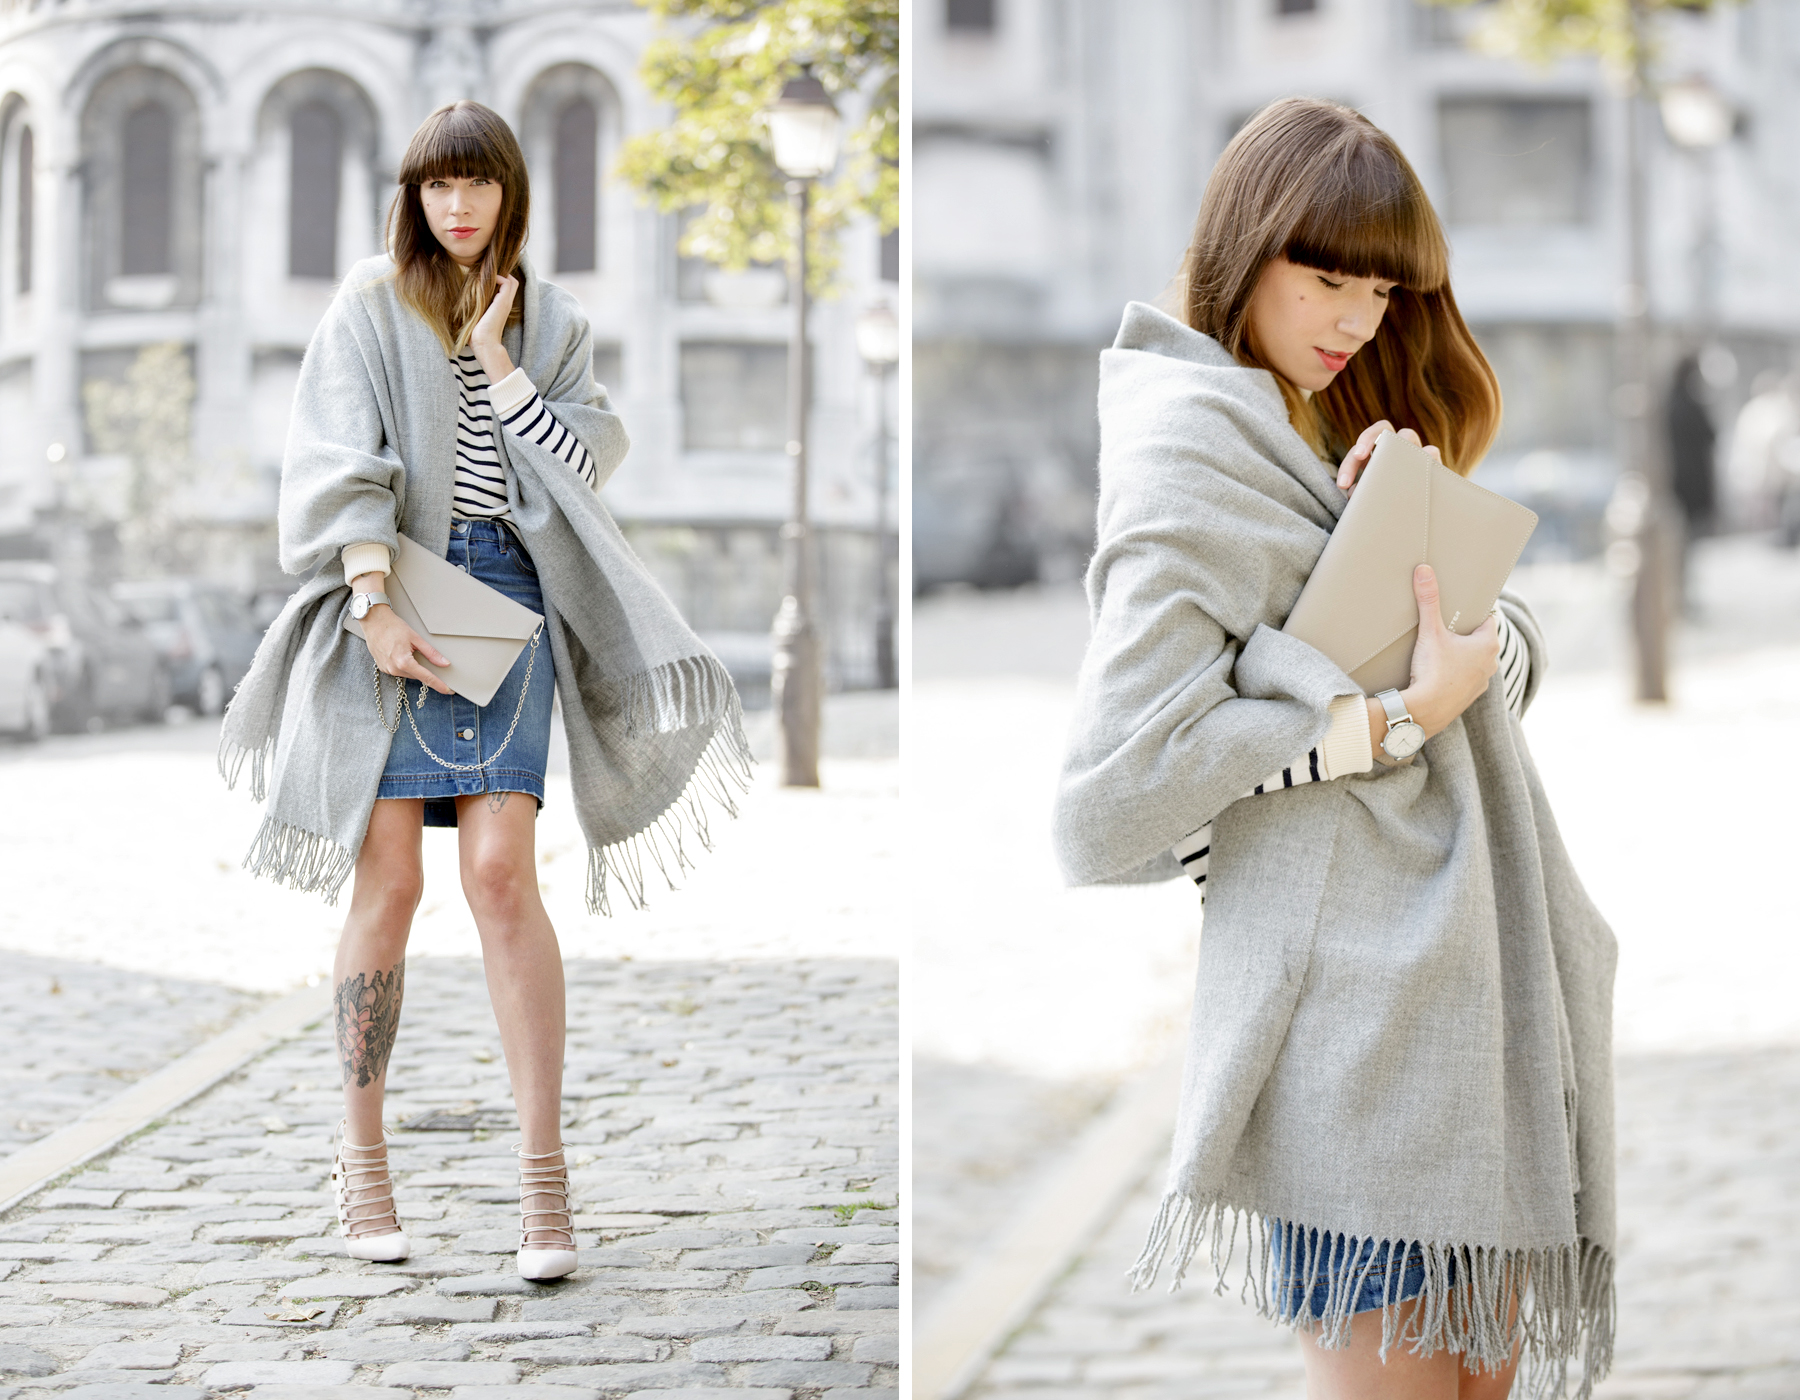 outfit ootd denim skirt grey scarf acne aquazzura high heels strappy montmartre sacre coeur paris streetstyle fashionblogger ricarda schernus cats & dogs blog pfw 2